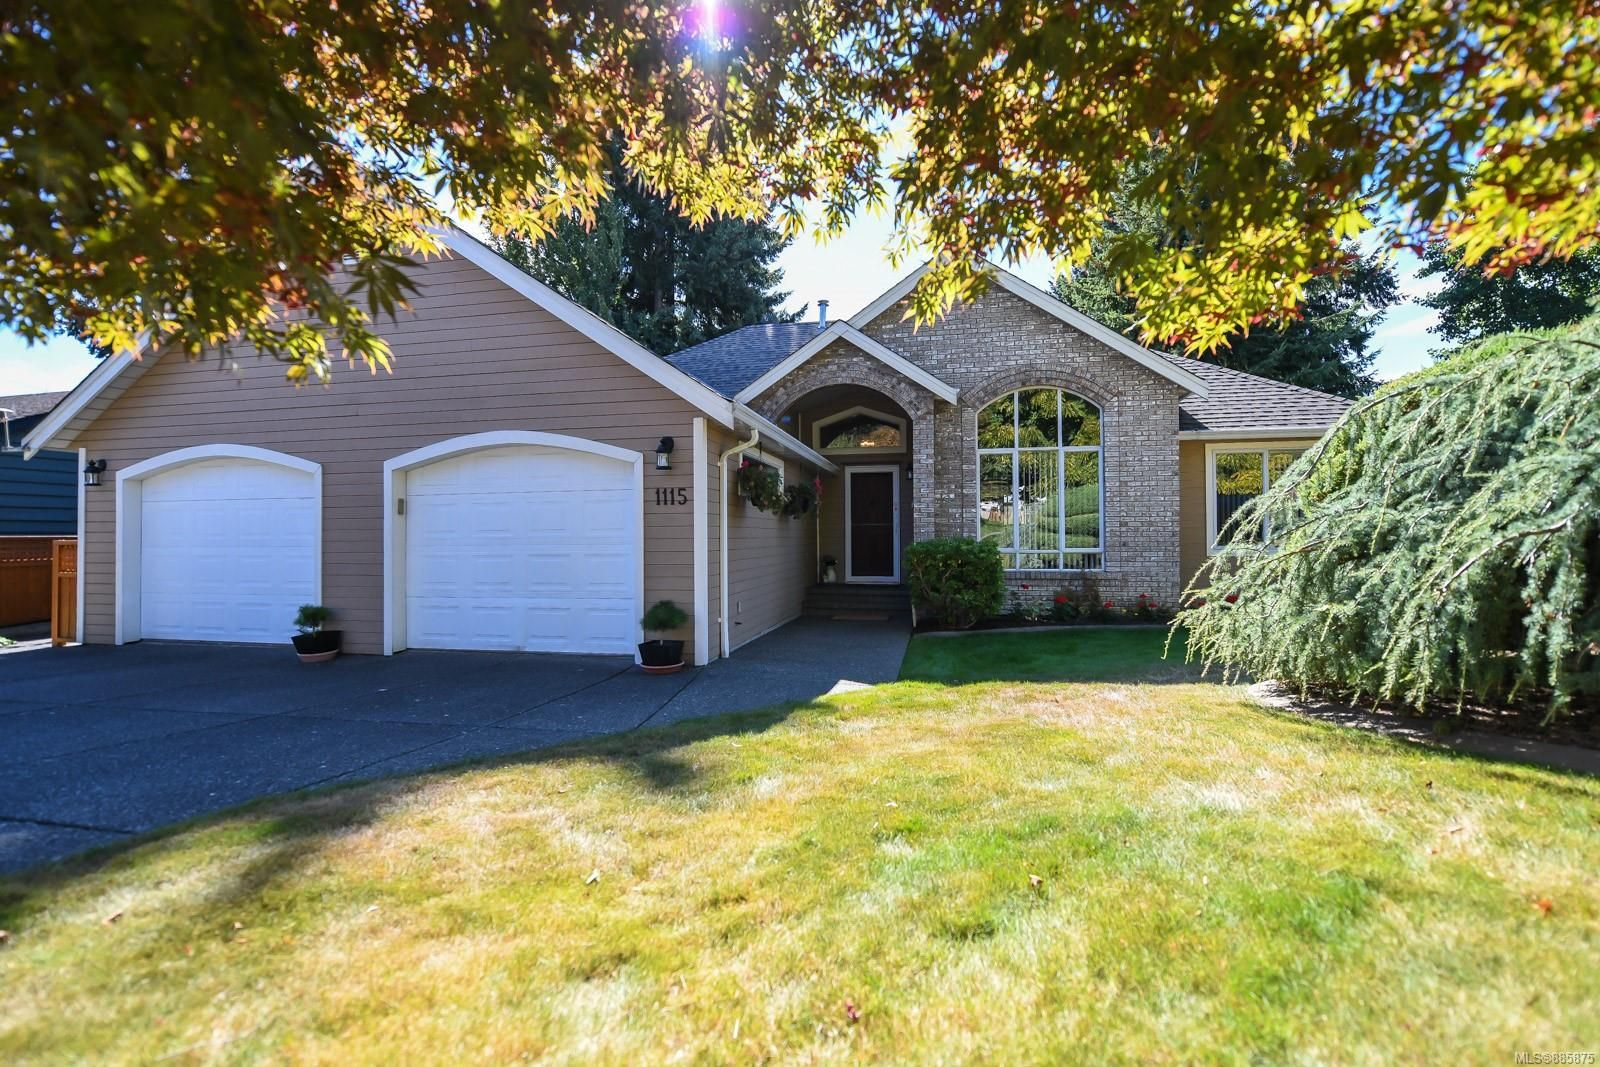 Main Photo: 1115 Evergreen Ave in : CV Courtenay East House for sale (Comox Valley)  : MLS®# 885875